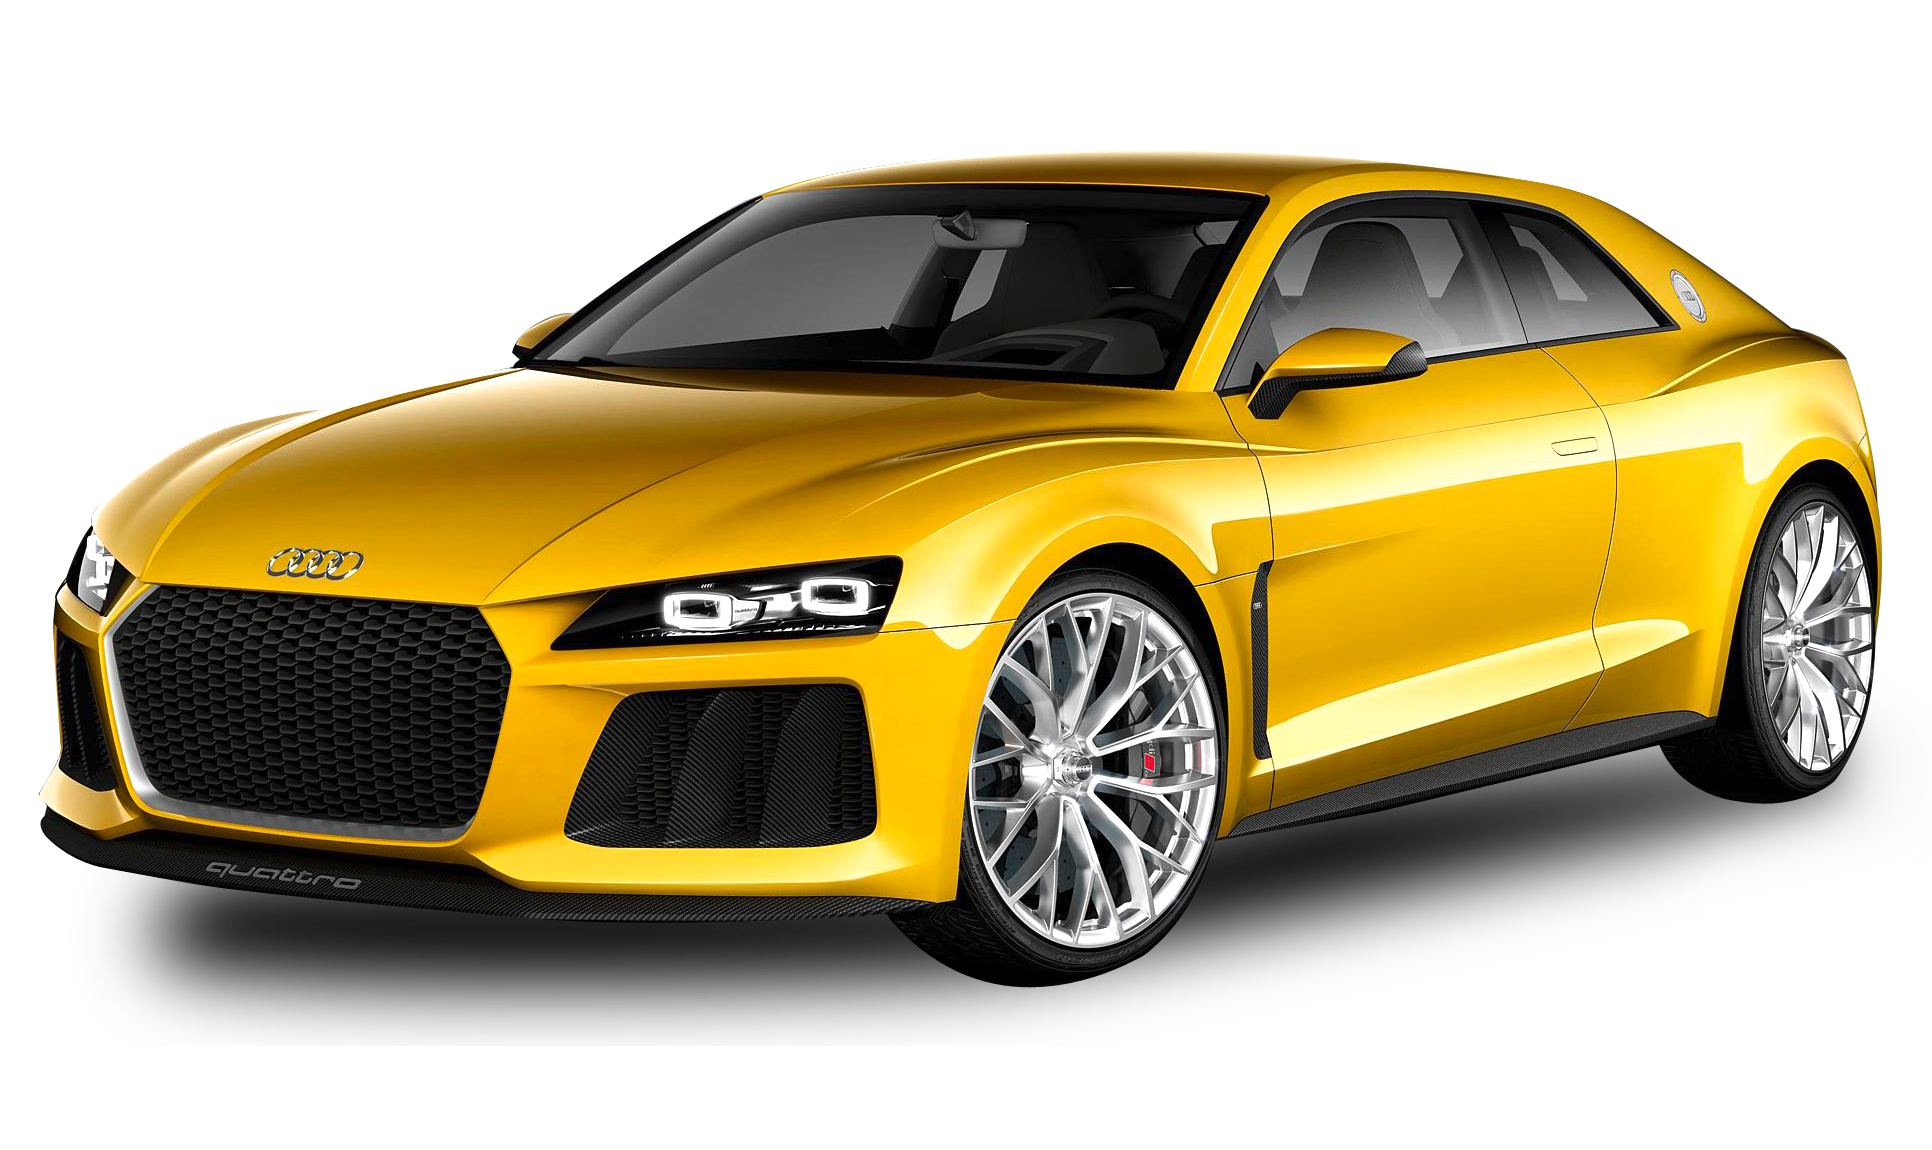 Audi Car PNG Image Side View image #45305